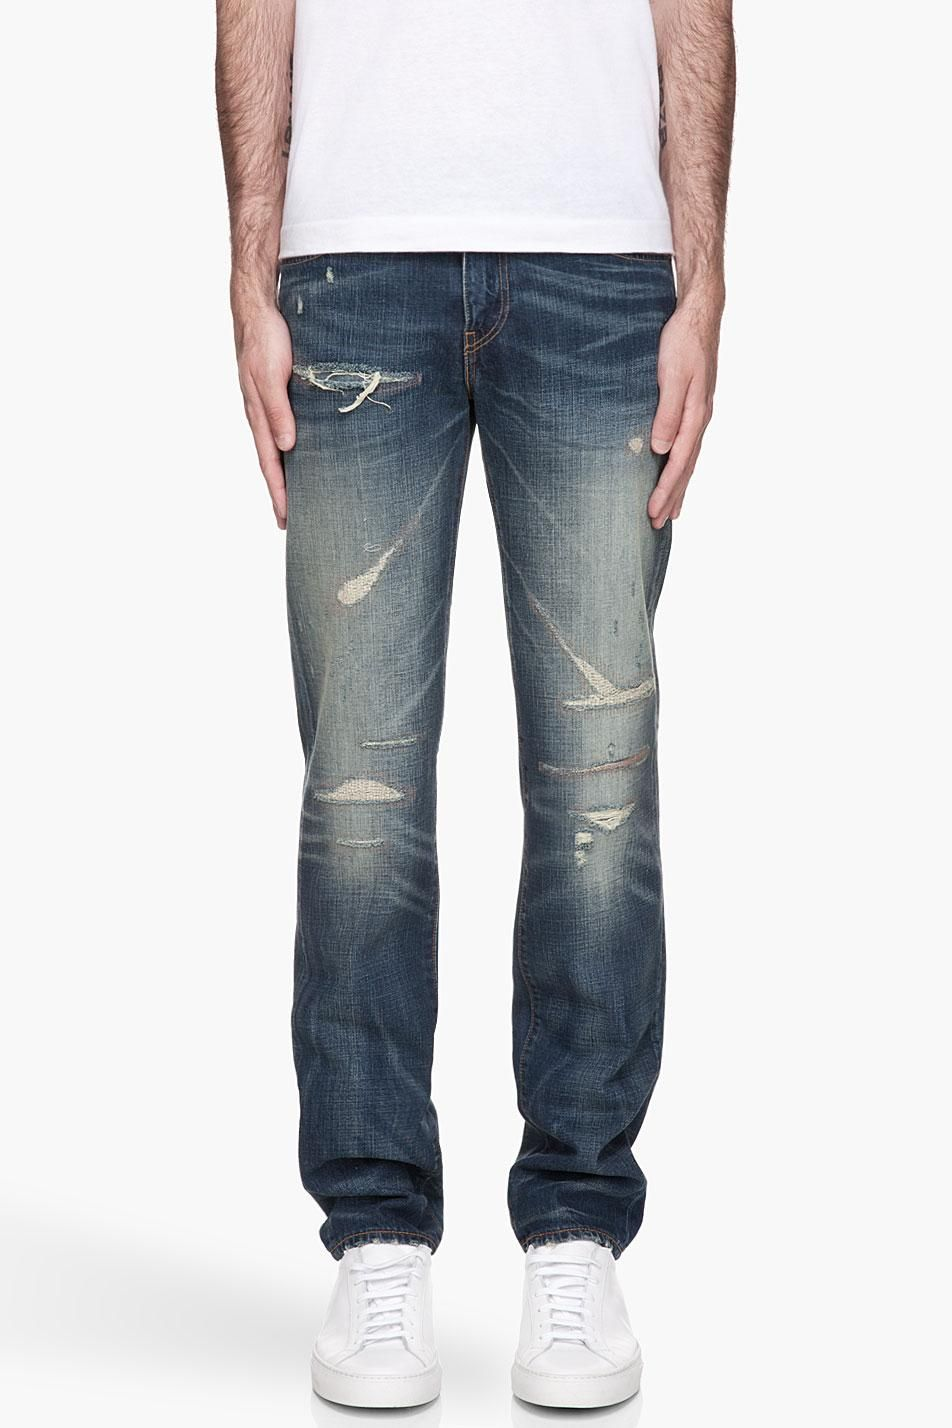 Levi's Blue faded and destressed 511 Slim Jeans